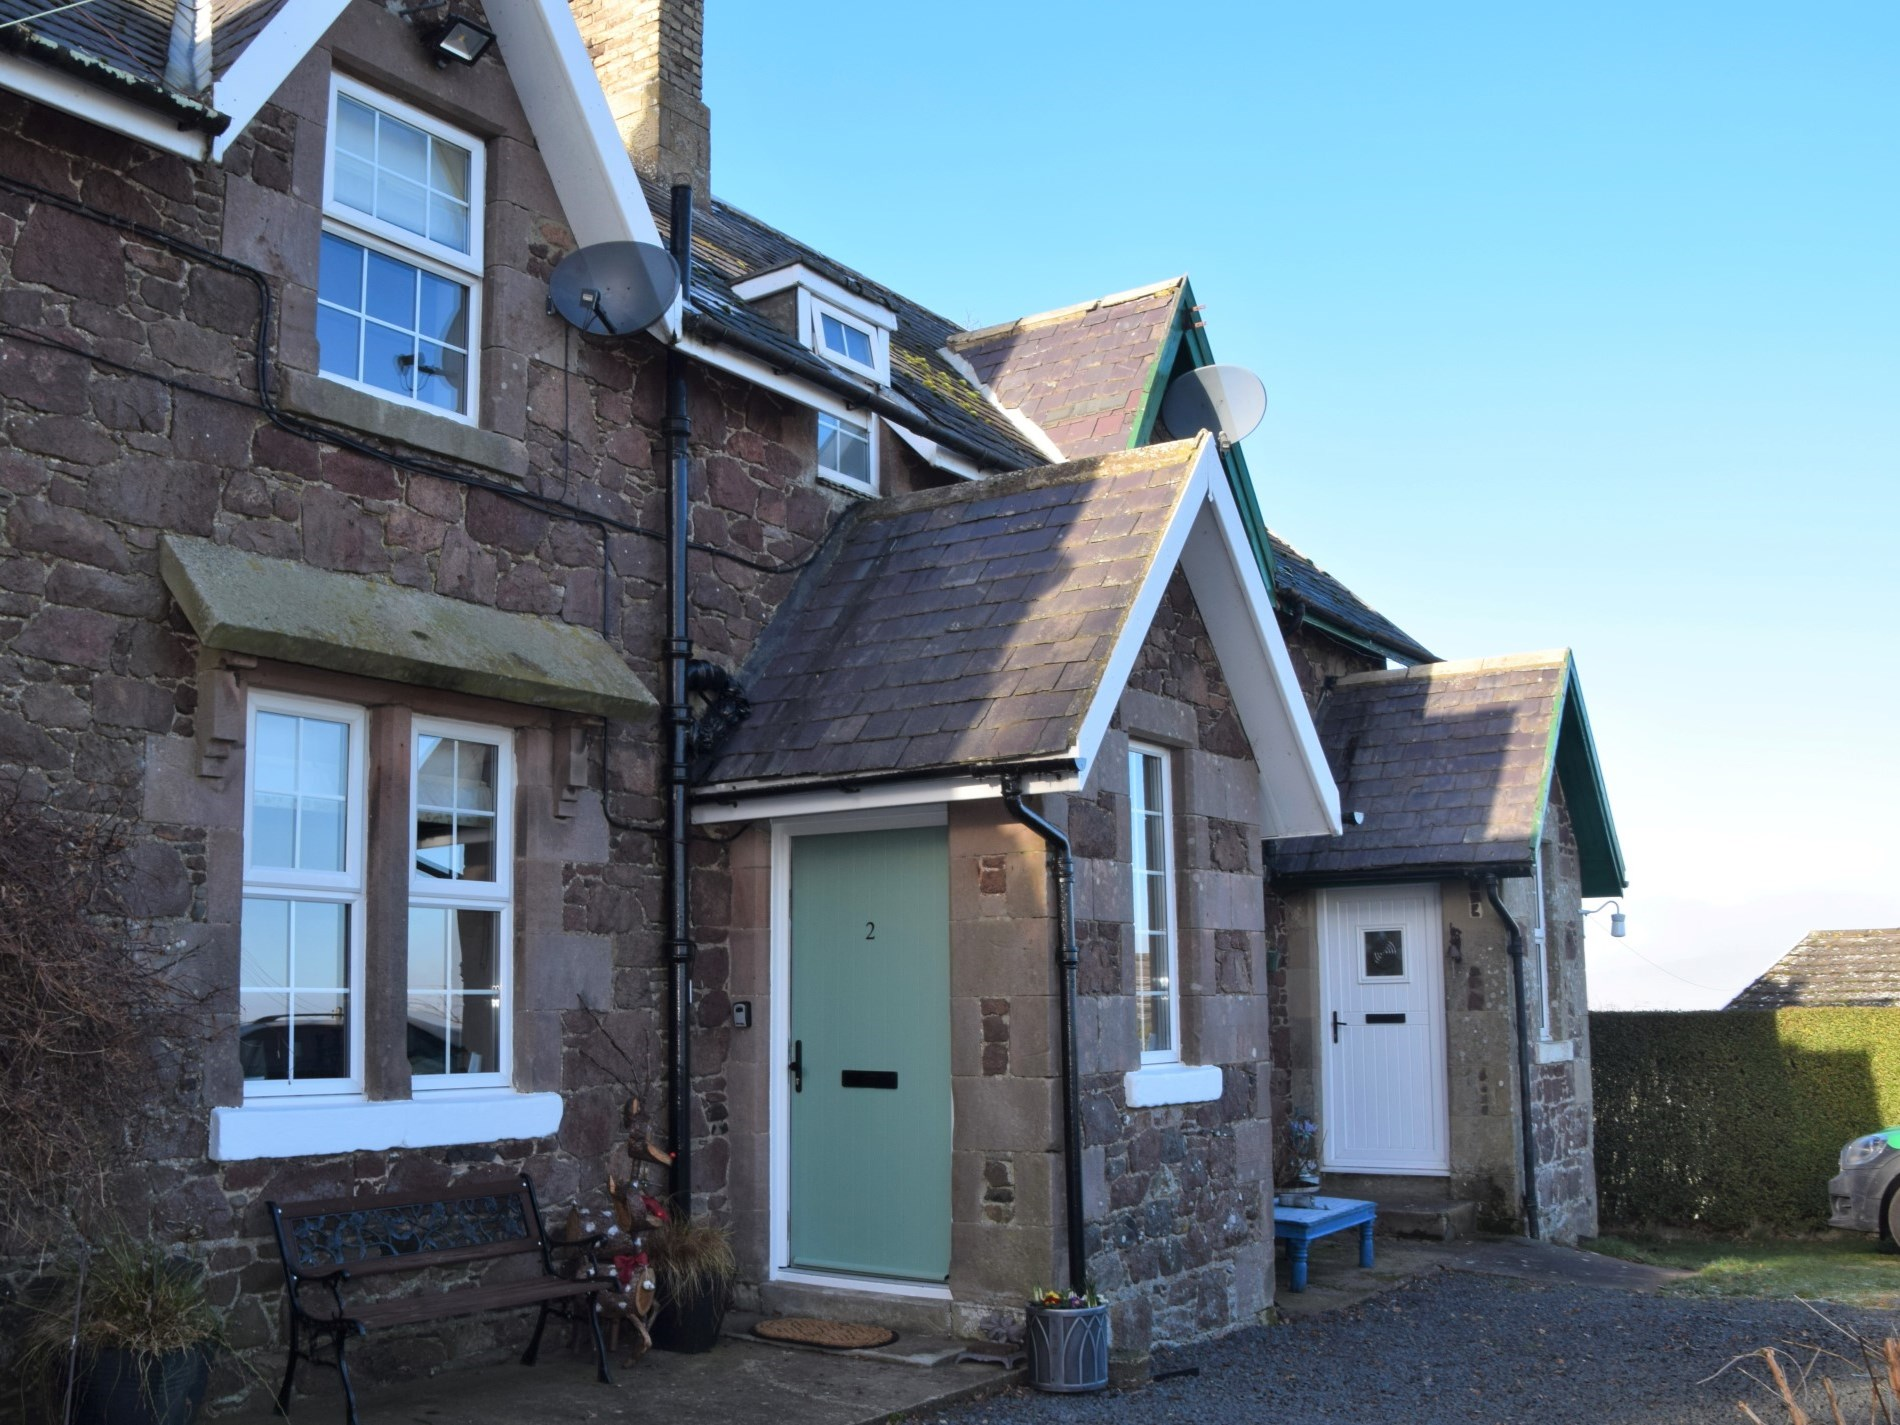 2 Bedroom Cottage in Mindrum, Northumbria